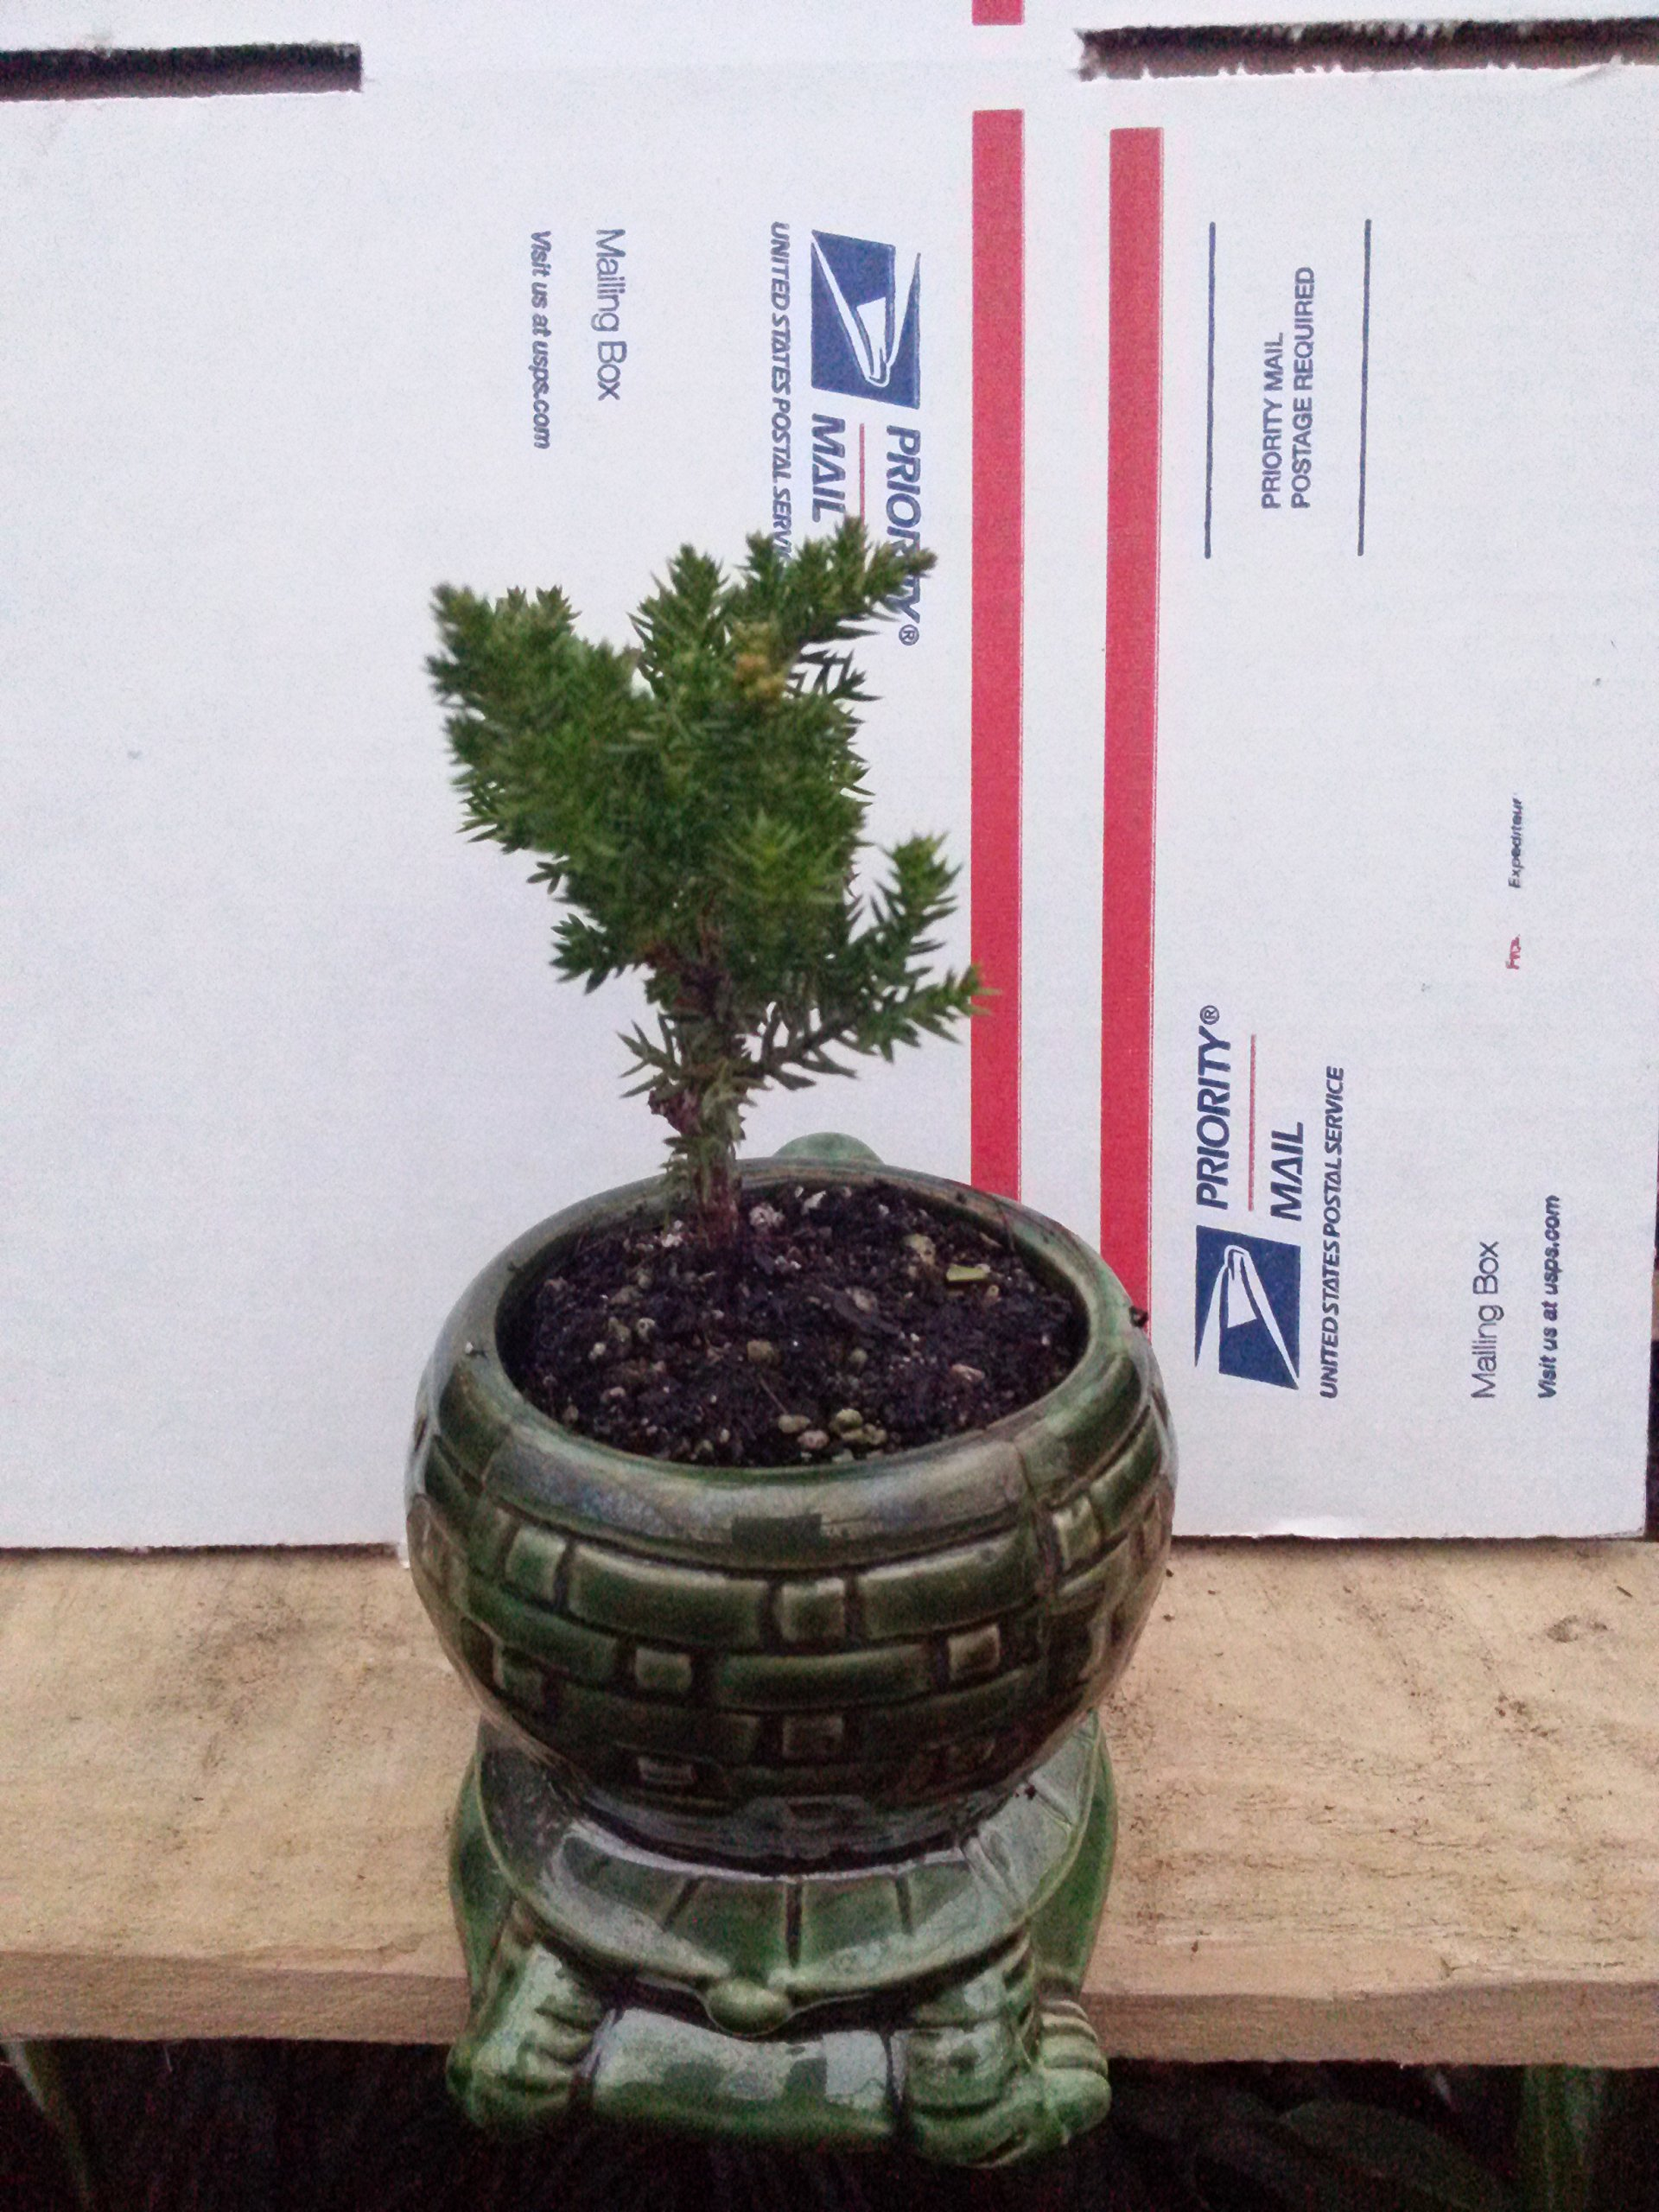 Japanese Juniper Bonsai Starter Tree - 4'' with Ceramic Pot - Collection Juniperus From Jm Bamboo